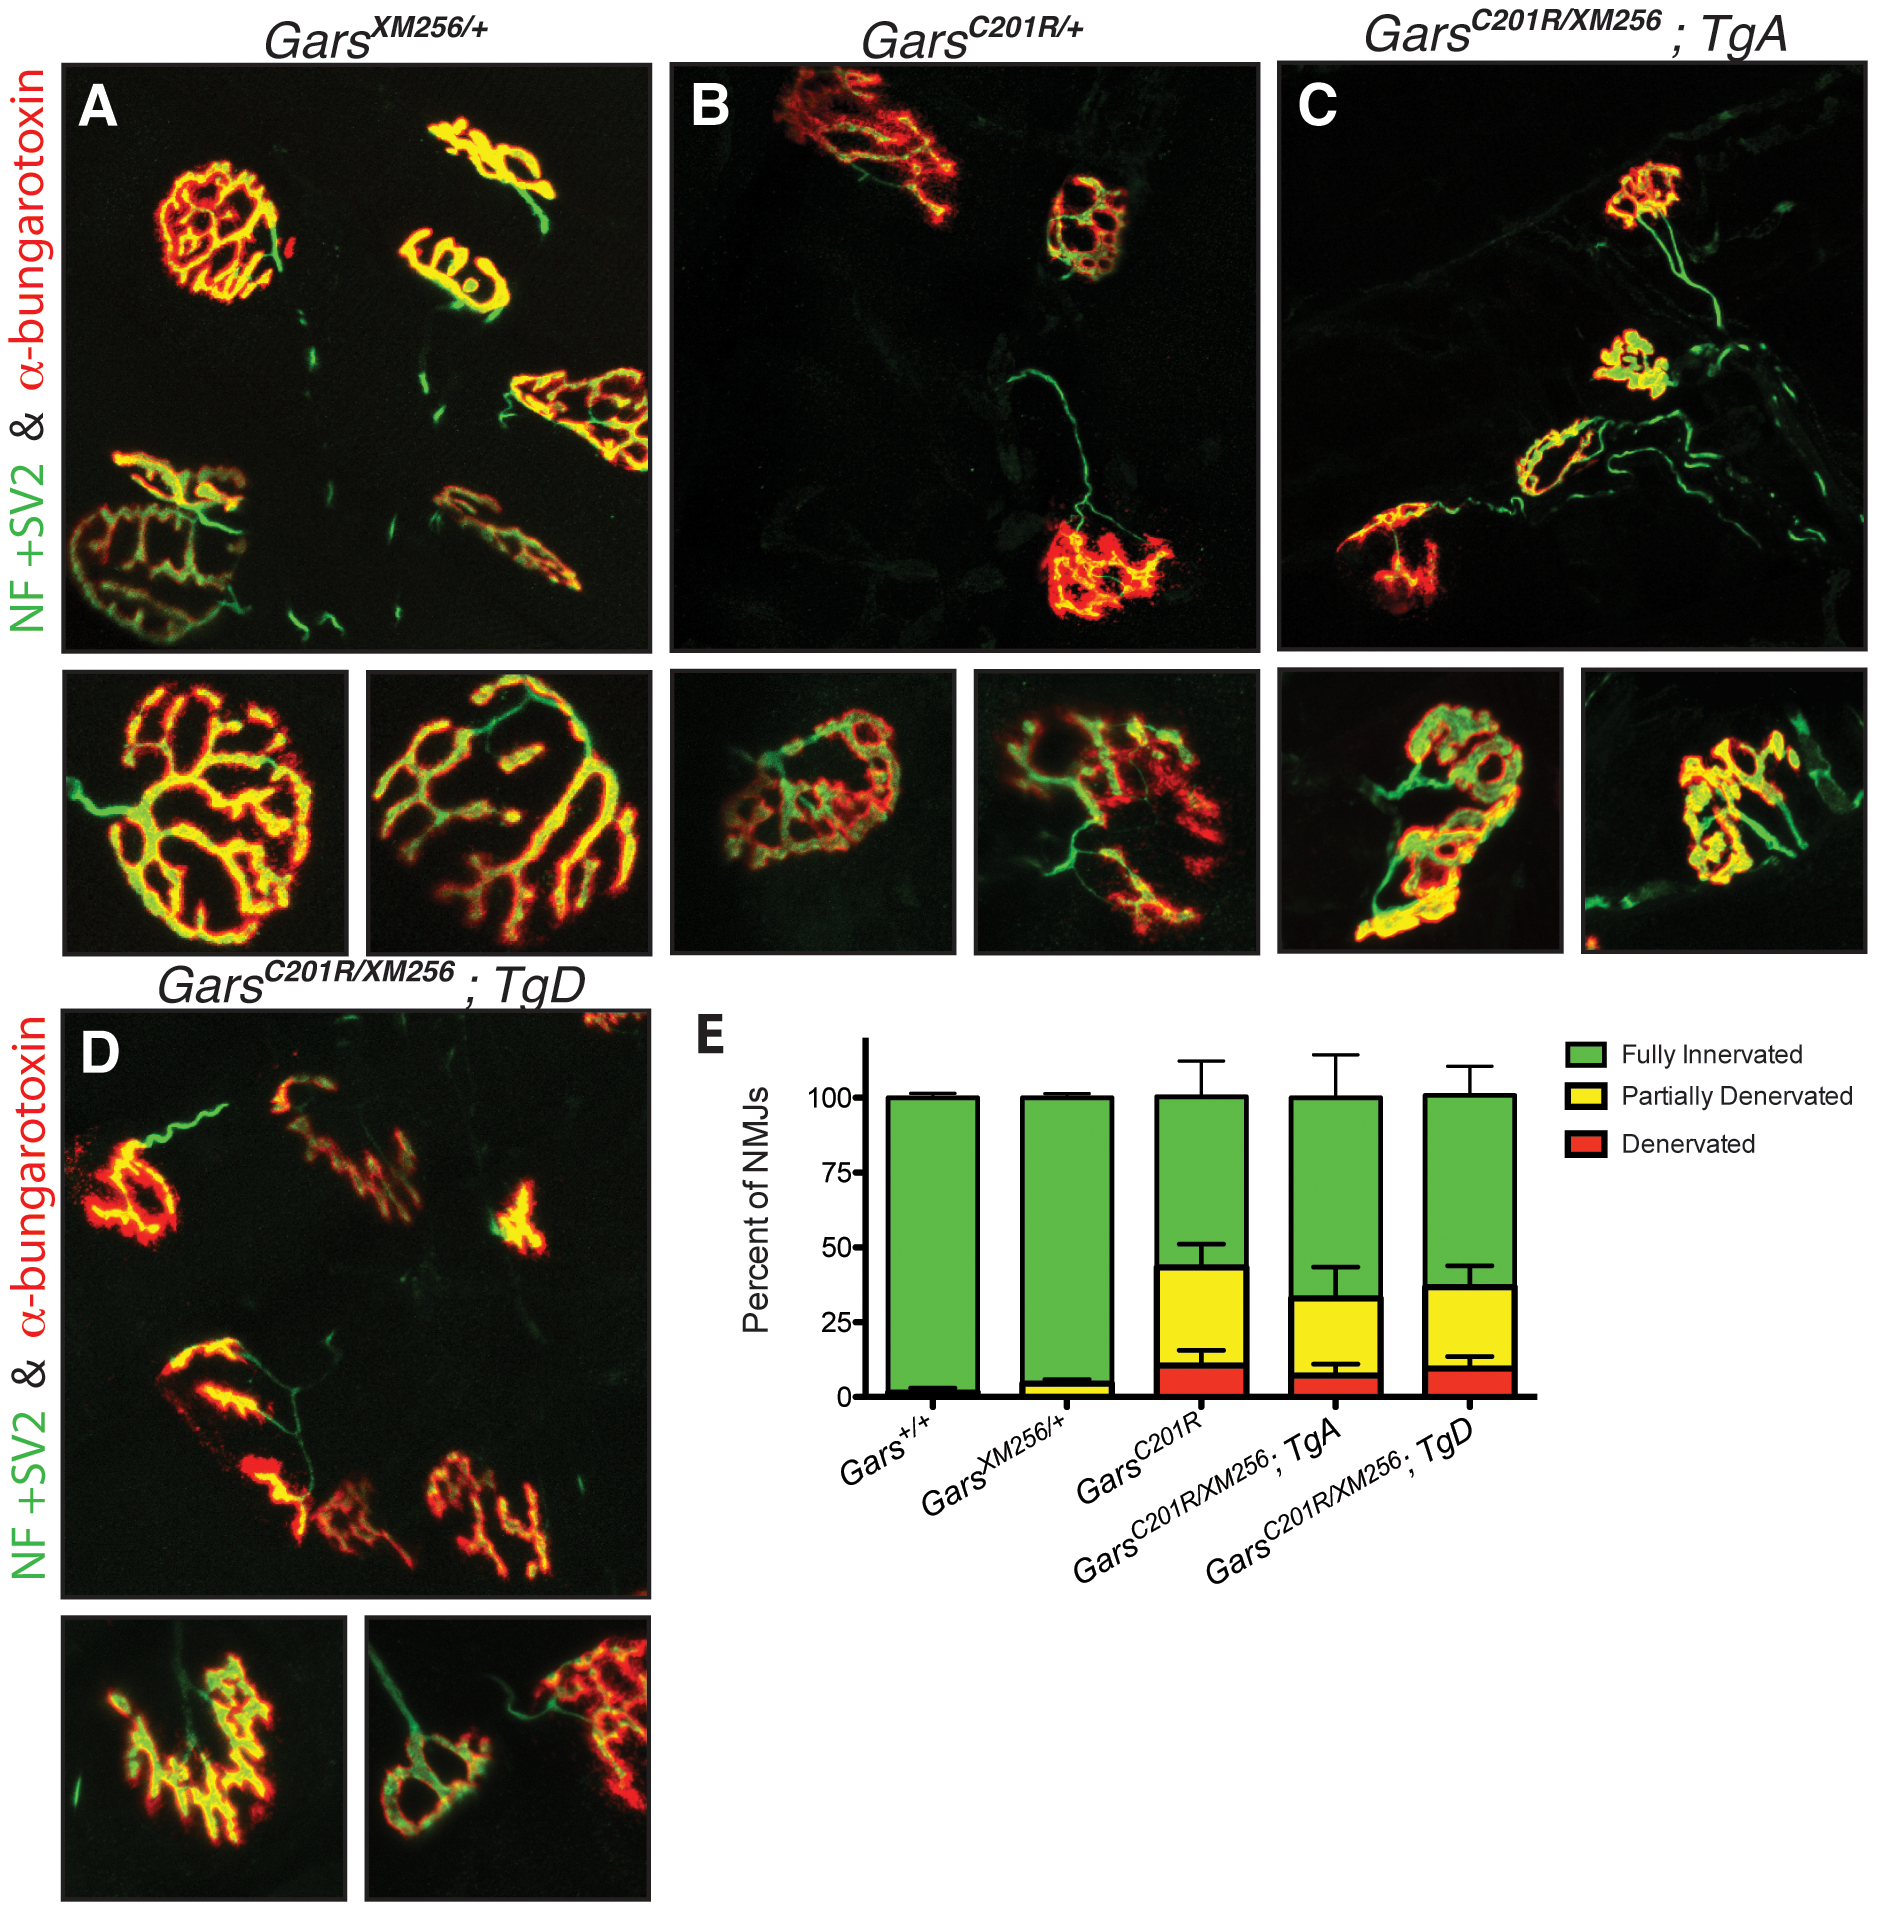 Neuromuscular junctions in rescued mice are similar to those in <i>C201R/+</i> mice.